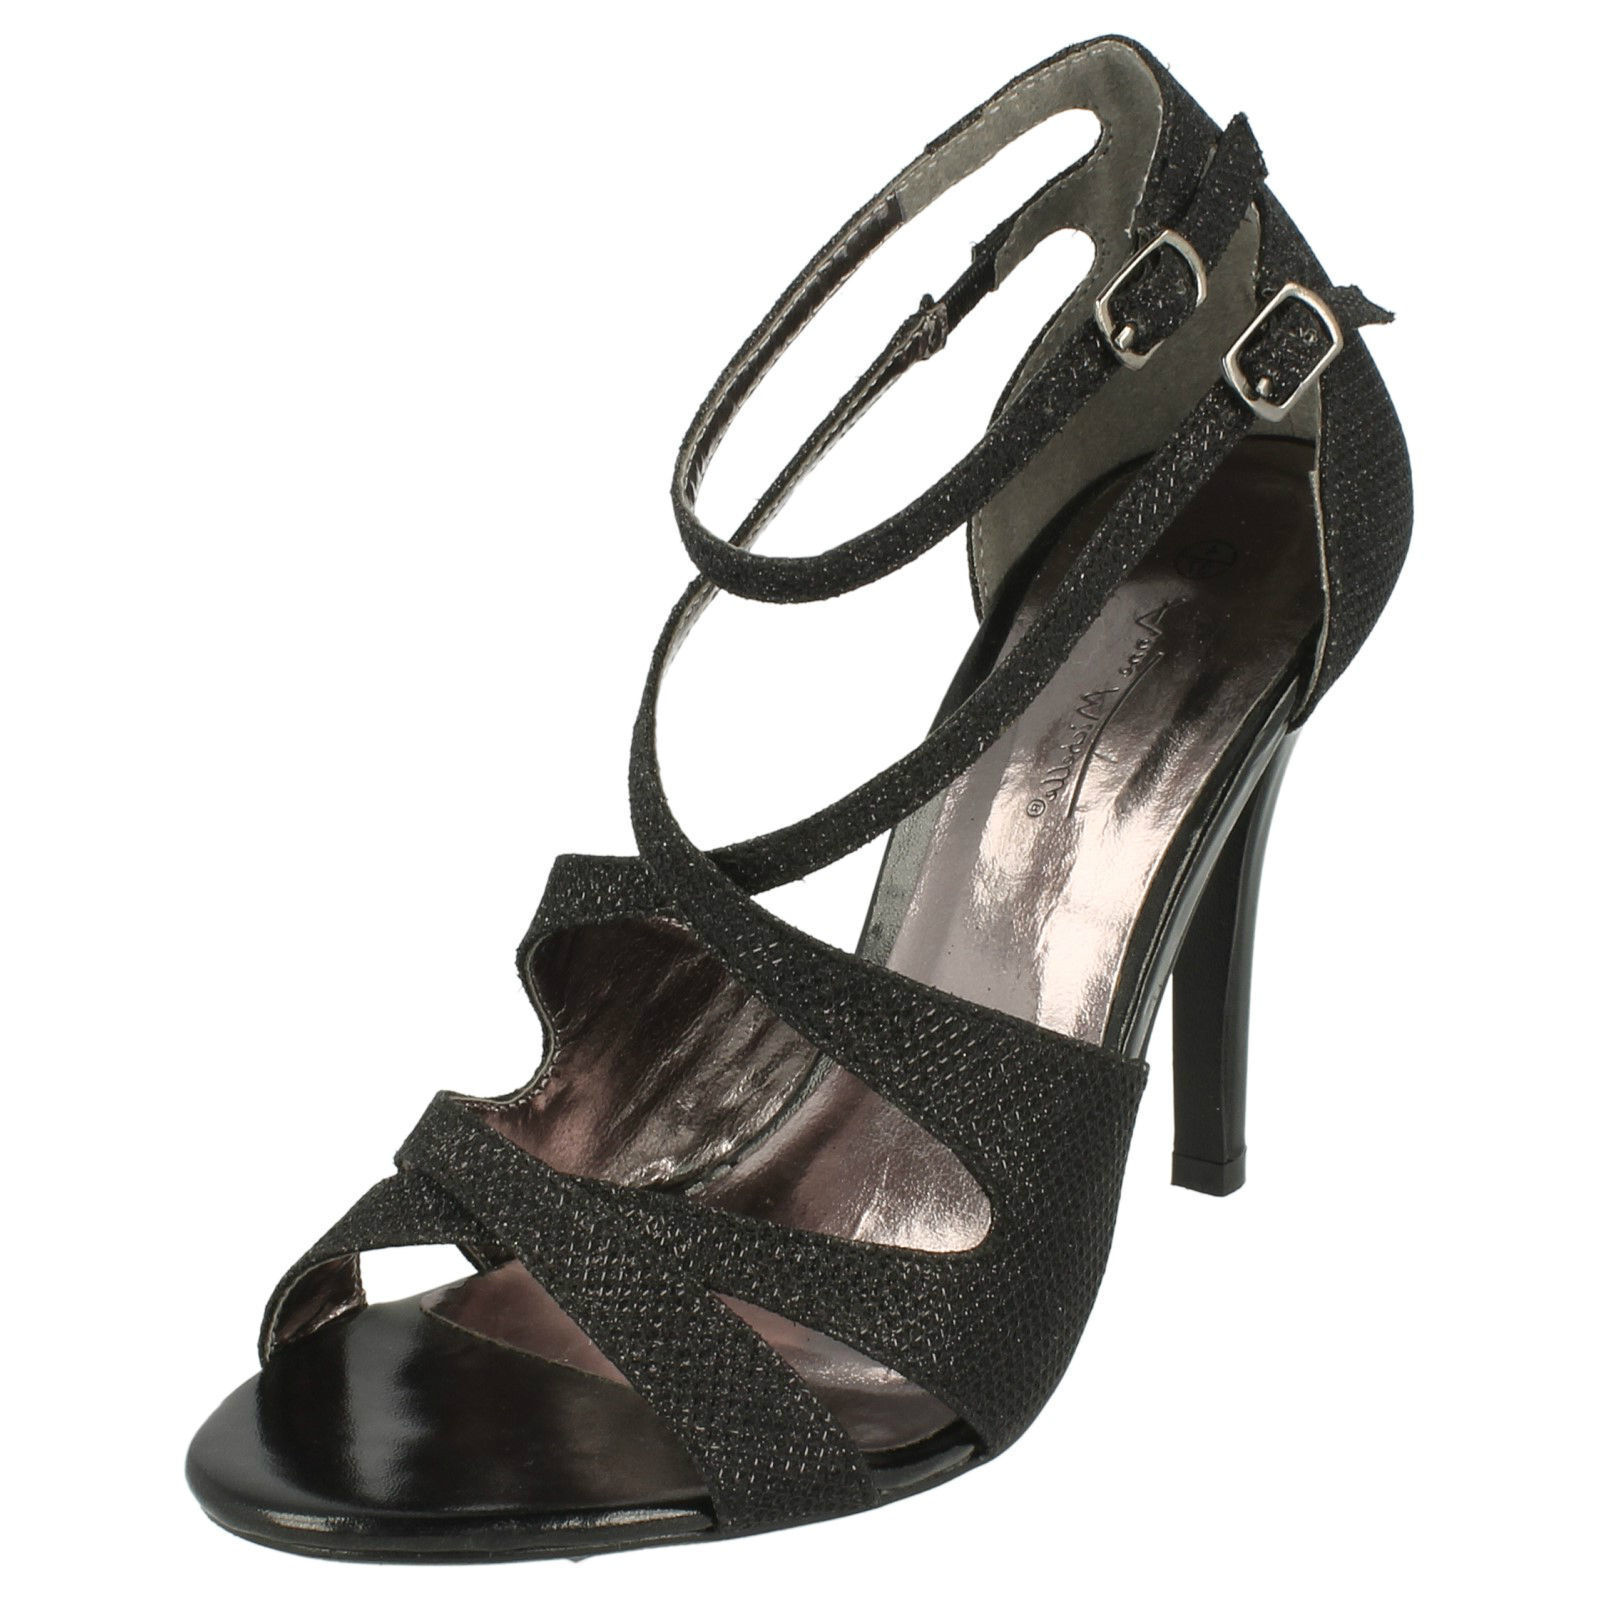 Anne Michelle Mujer Purpurina Zapatos negros L3412 Uk3 - 8 (25b)